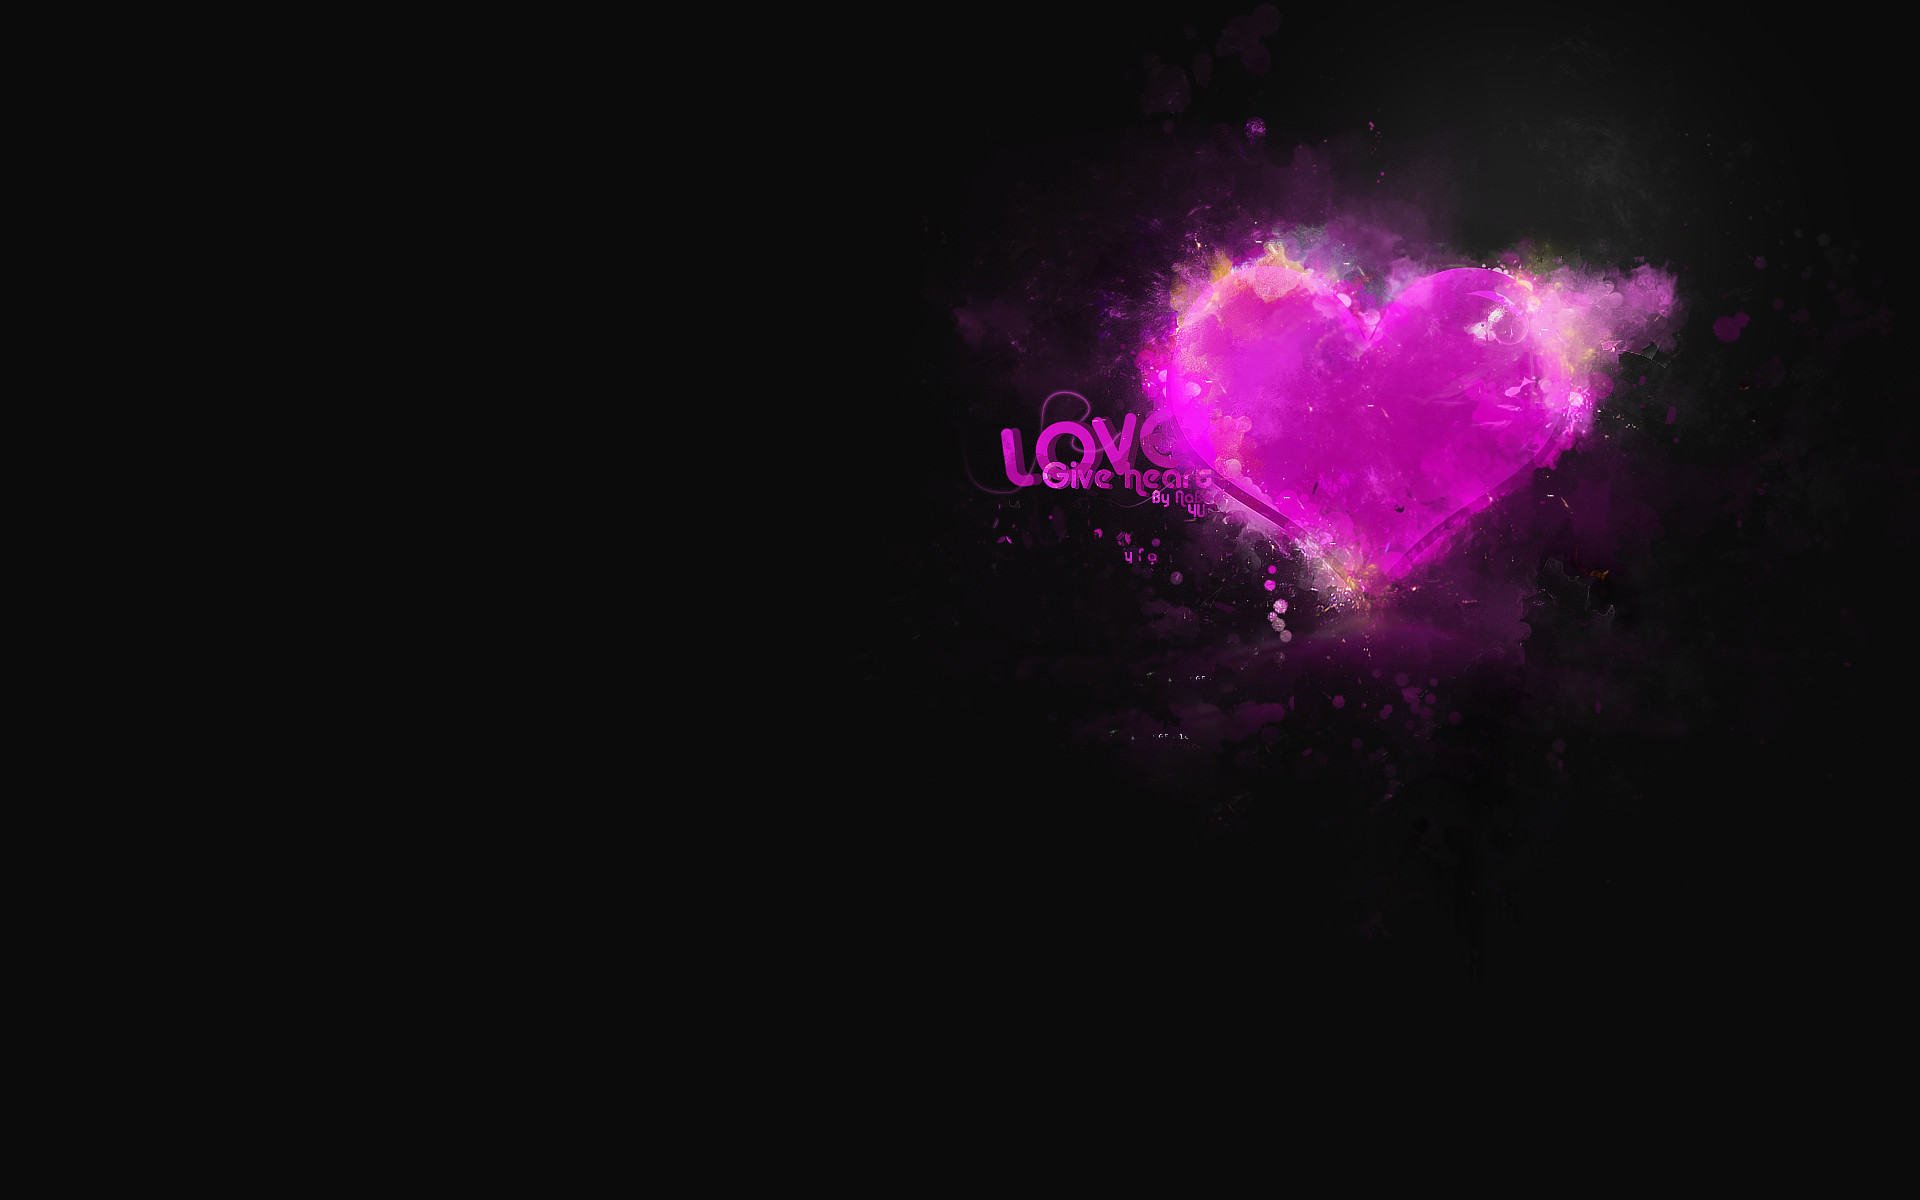 love backgrounds wallpaper (62+ images)